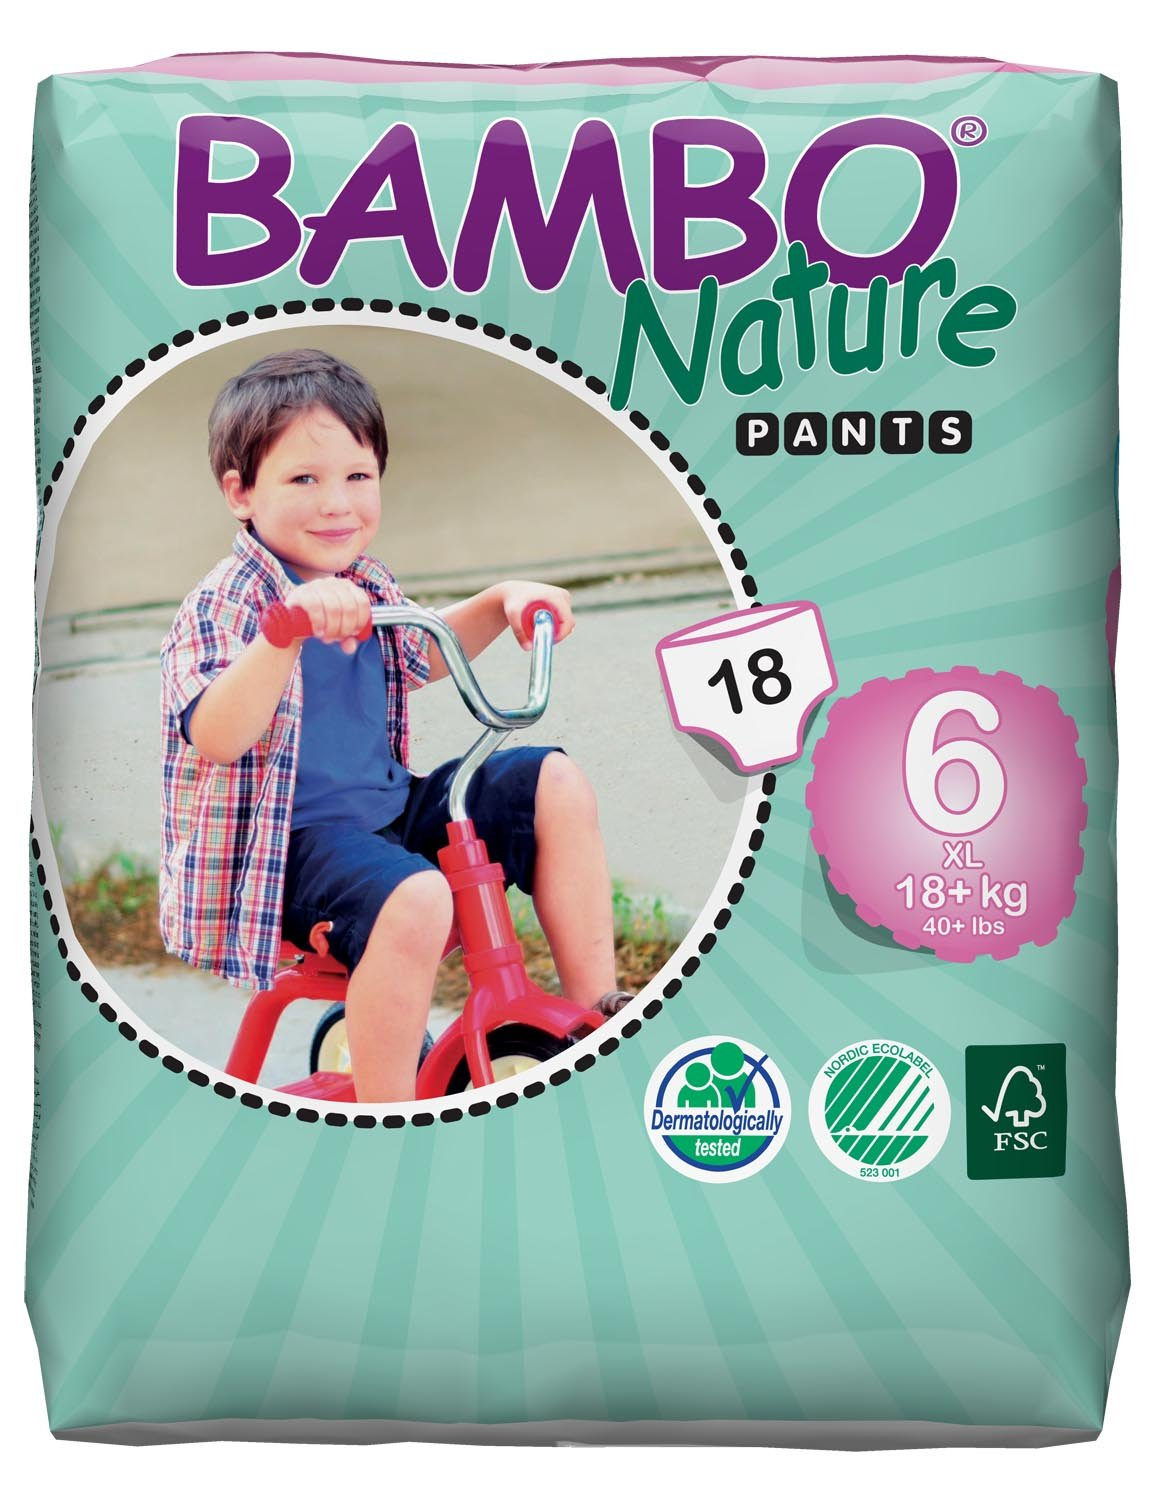 3 Packs of Bambo XL Training Pants 18+ kg, 40+ lb Abena